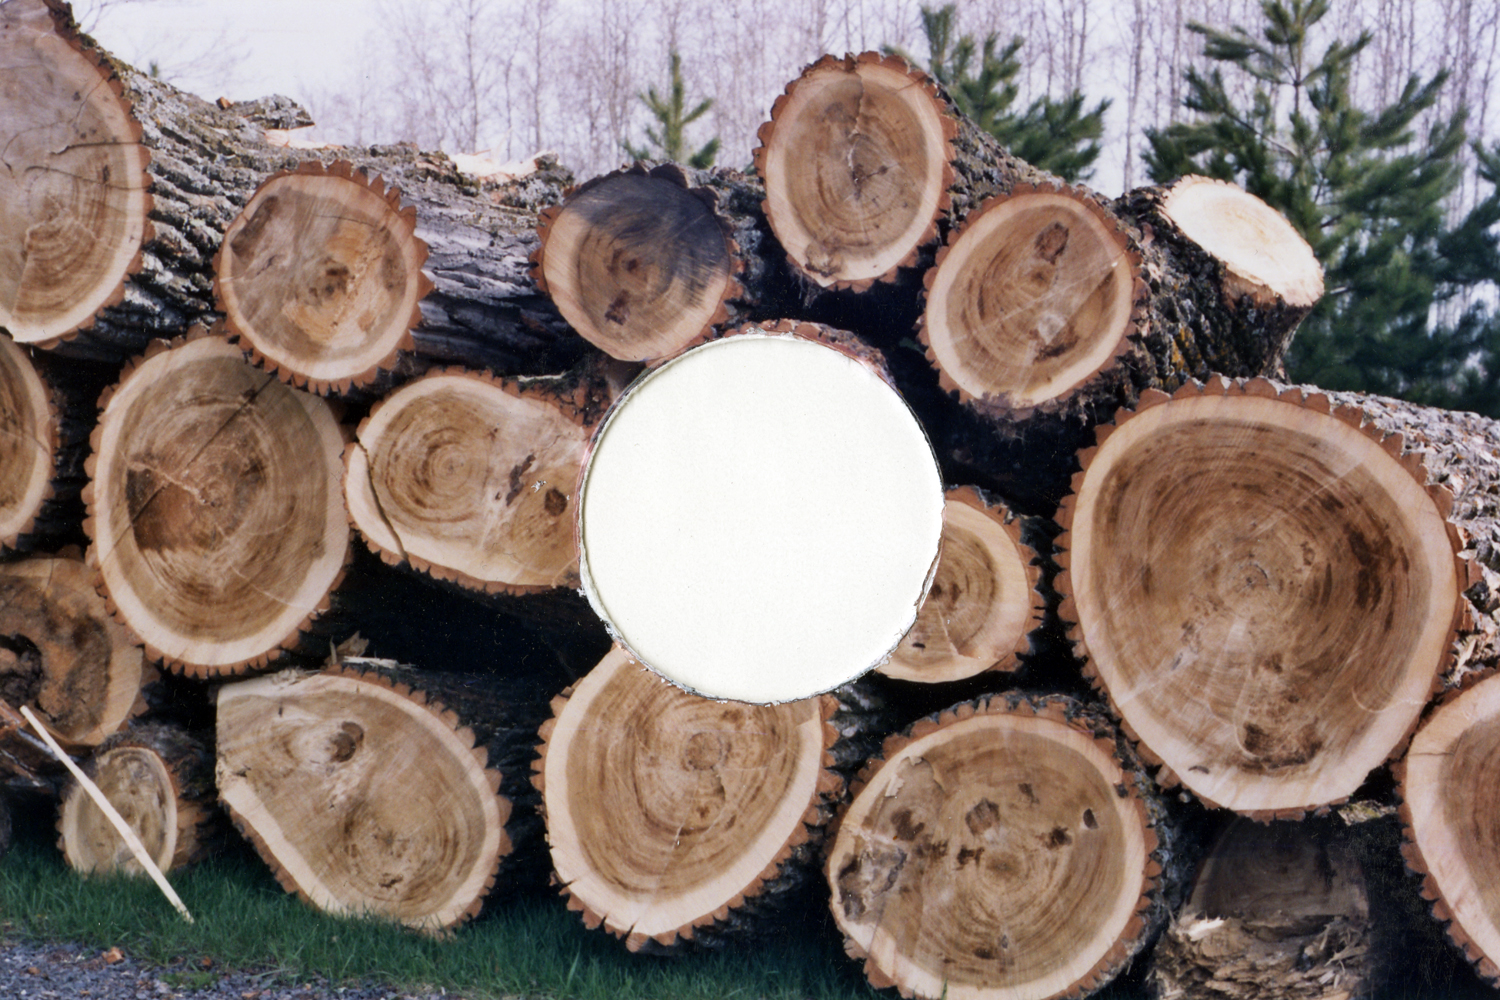 Untitled (Logs), 2006